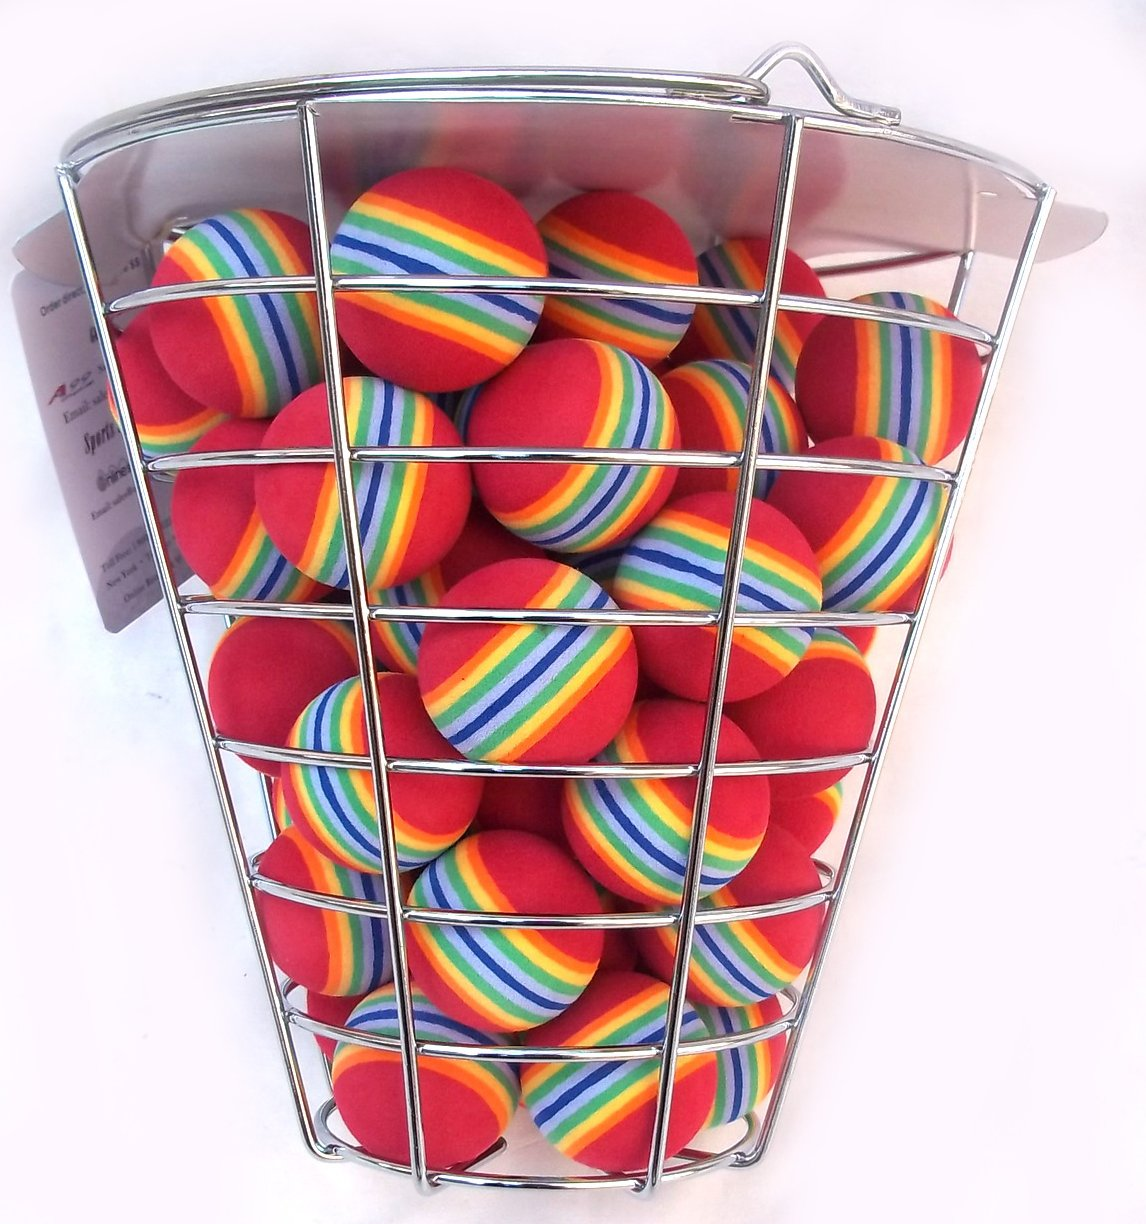 A99 Golf Rainbow Foam Ball Practice 50 Pcs with Bucket by A99 Golf (Image #2)